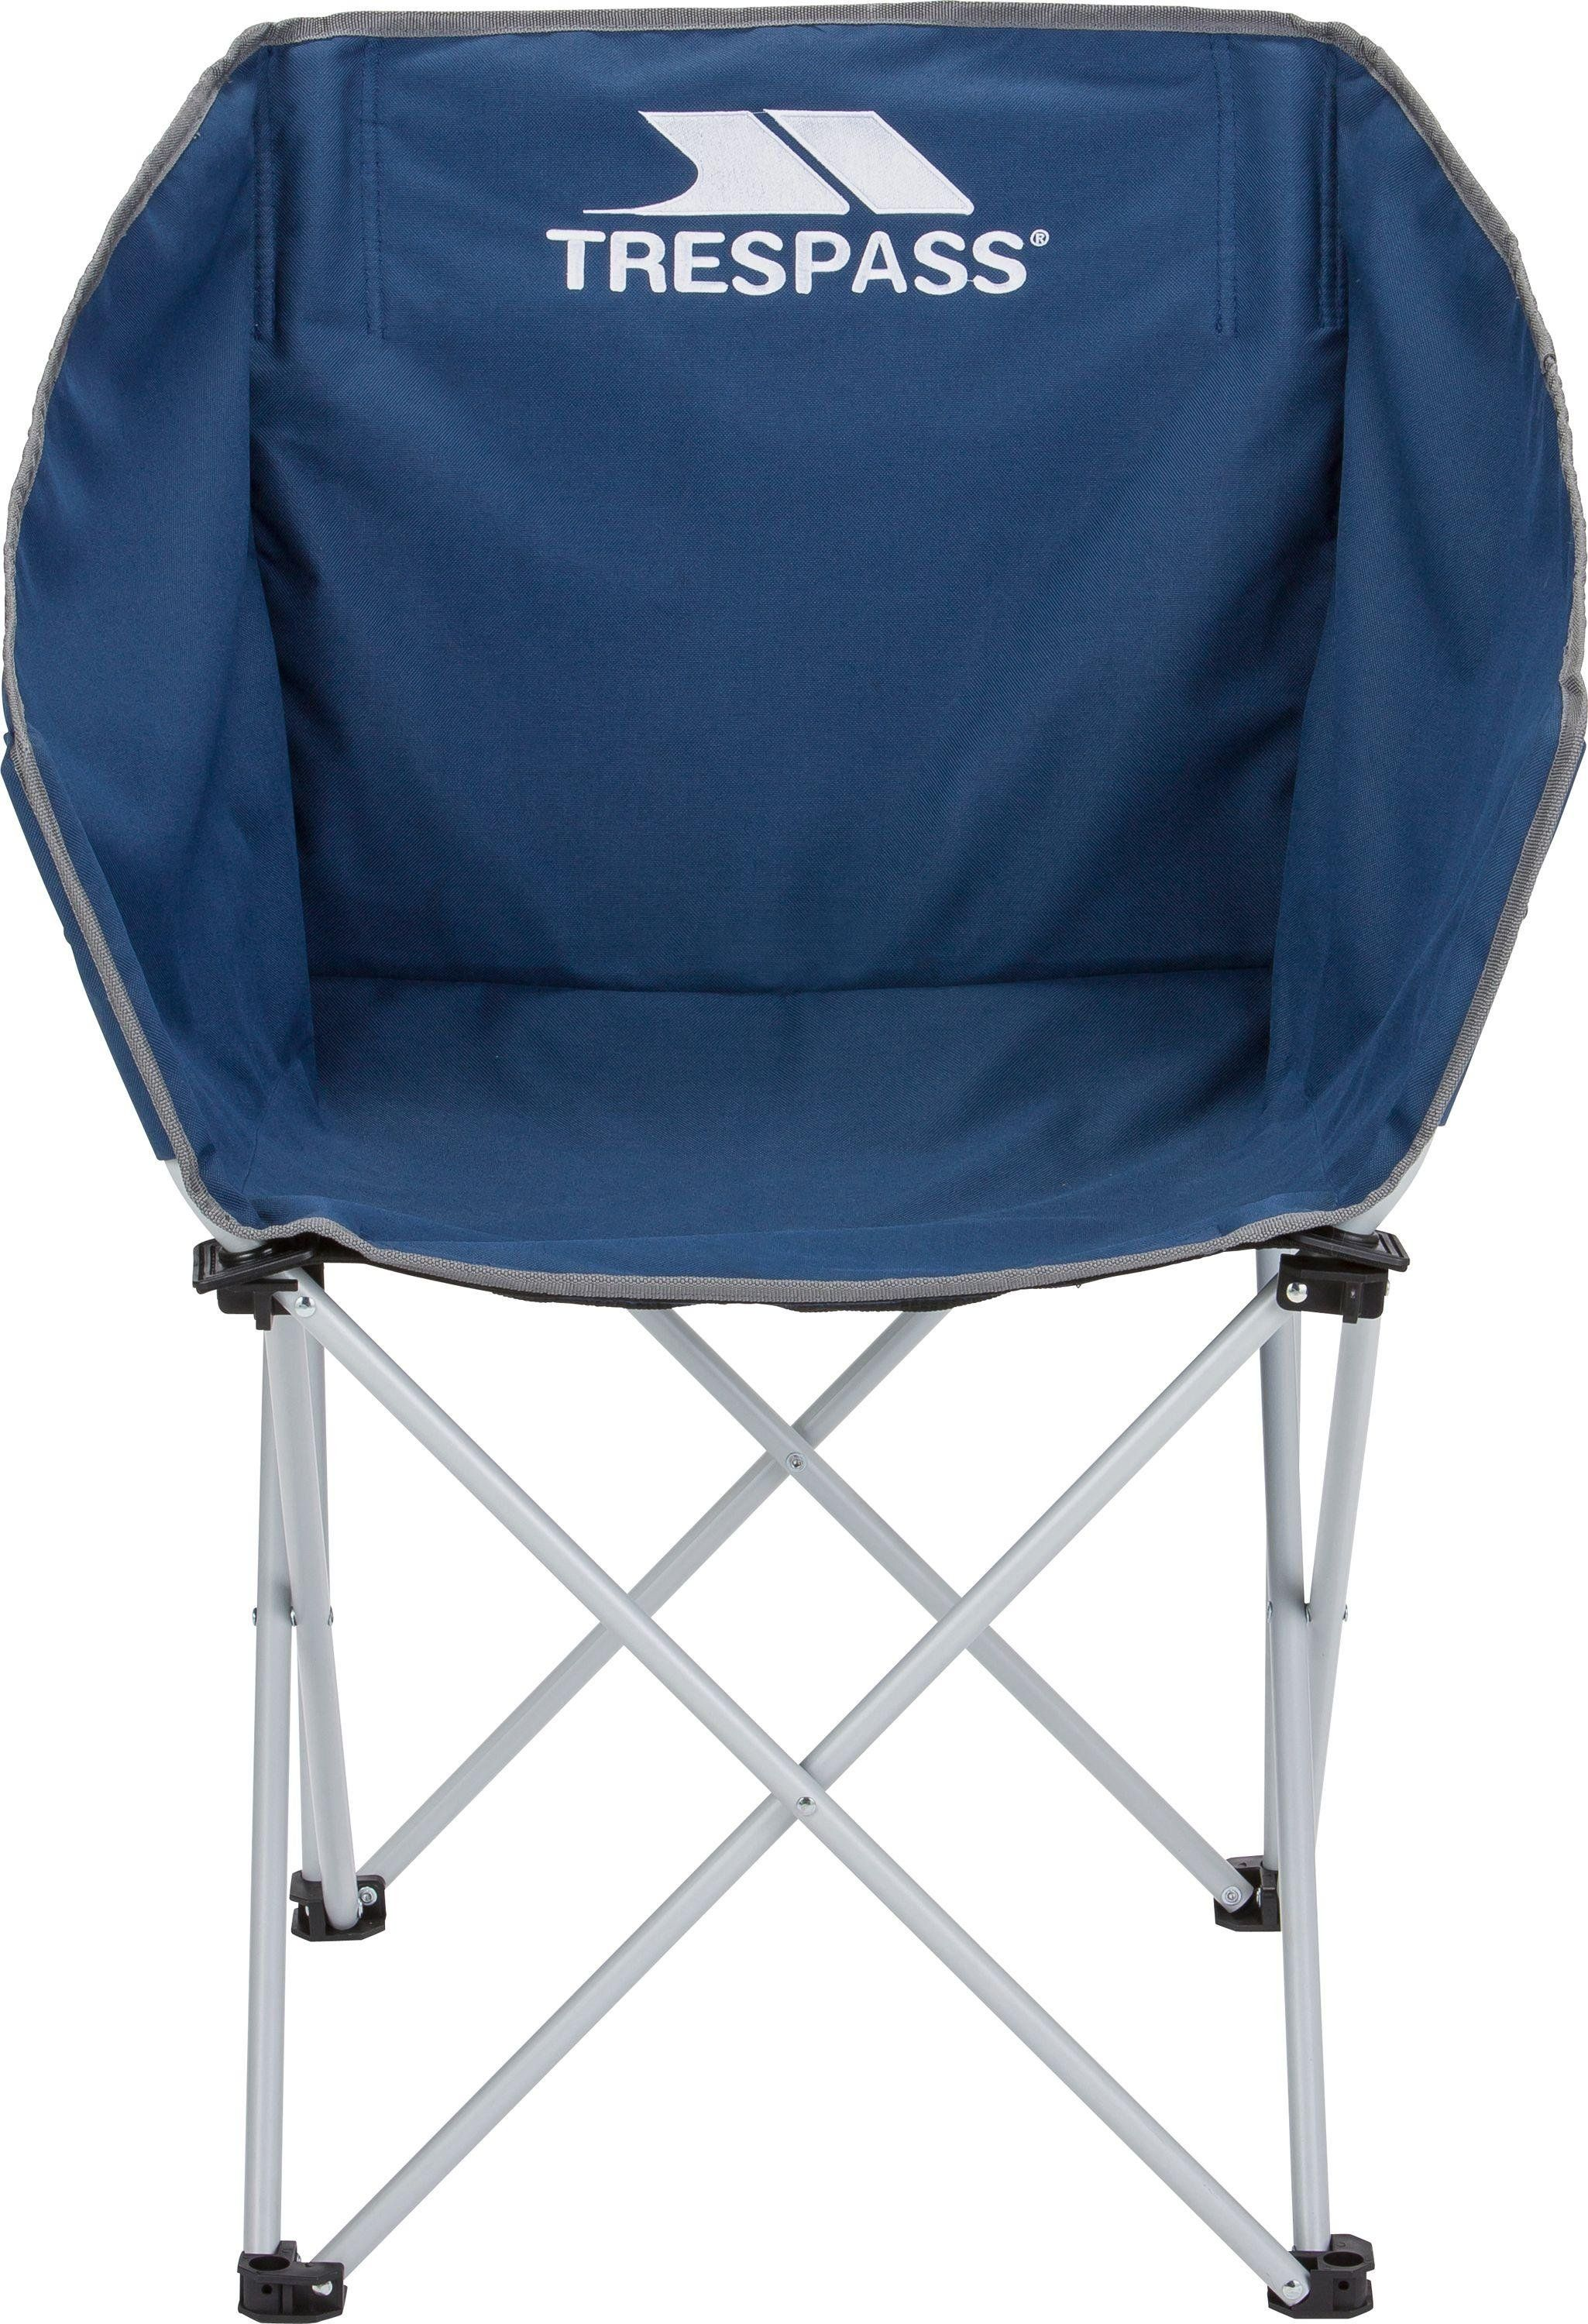 Steamer MultiPosition Folding Sun Lounger with Cushion